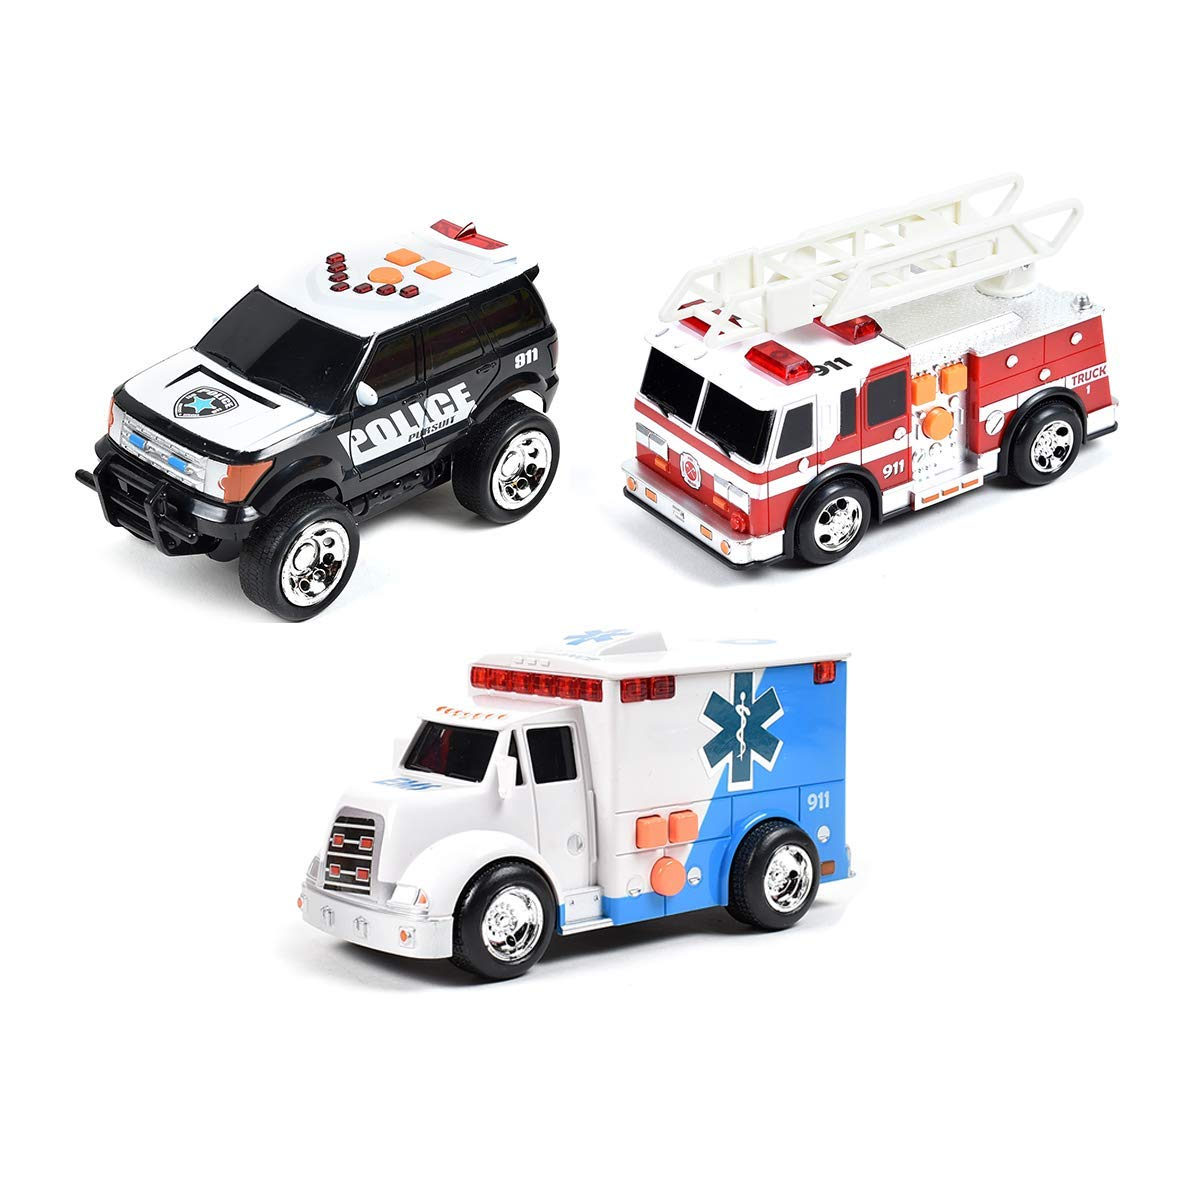 Maxx Action Mini Rescue Vehicles 3 Pack with Friction-Rev Motor, Rubber  Tires and Lights & Sounds in 8 Assorted Styles SUV, Helicopter, Fire Truck  &